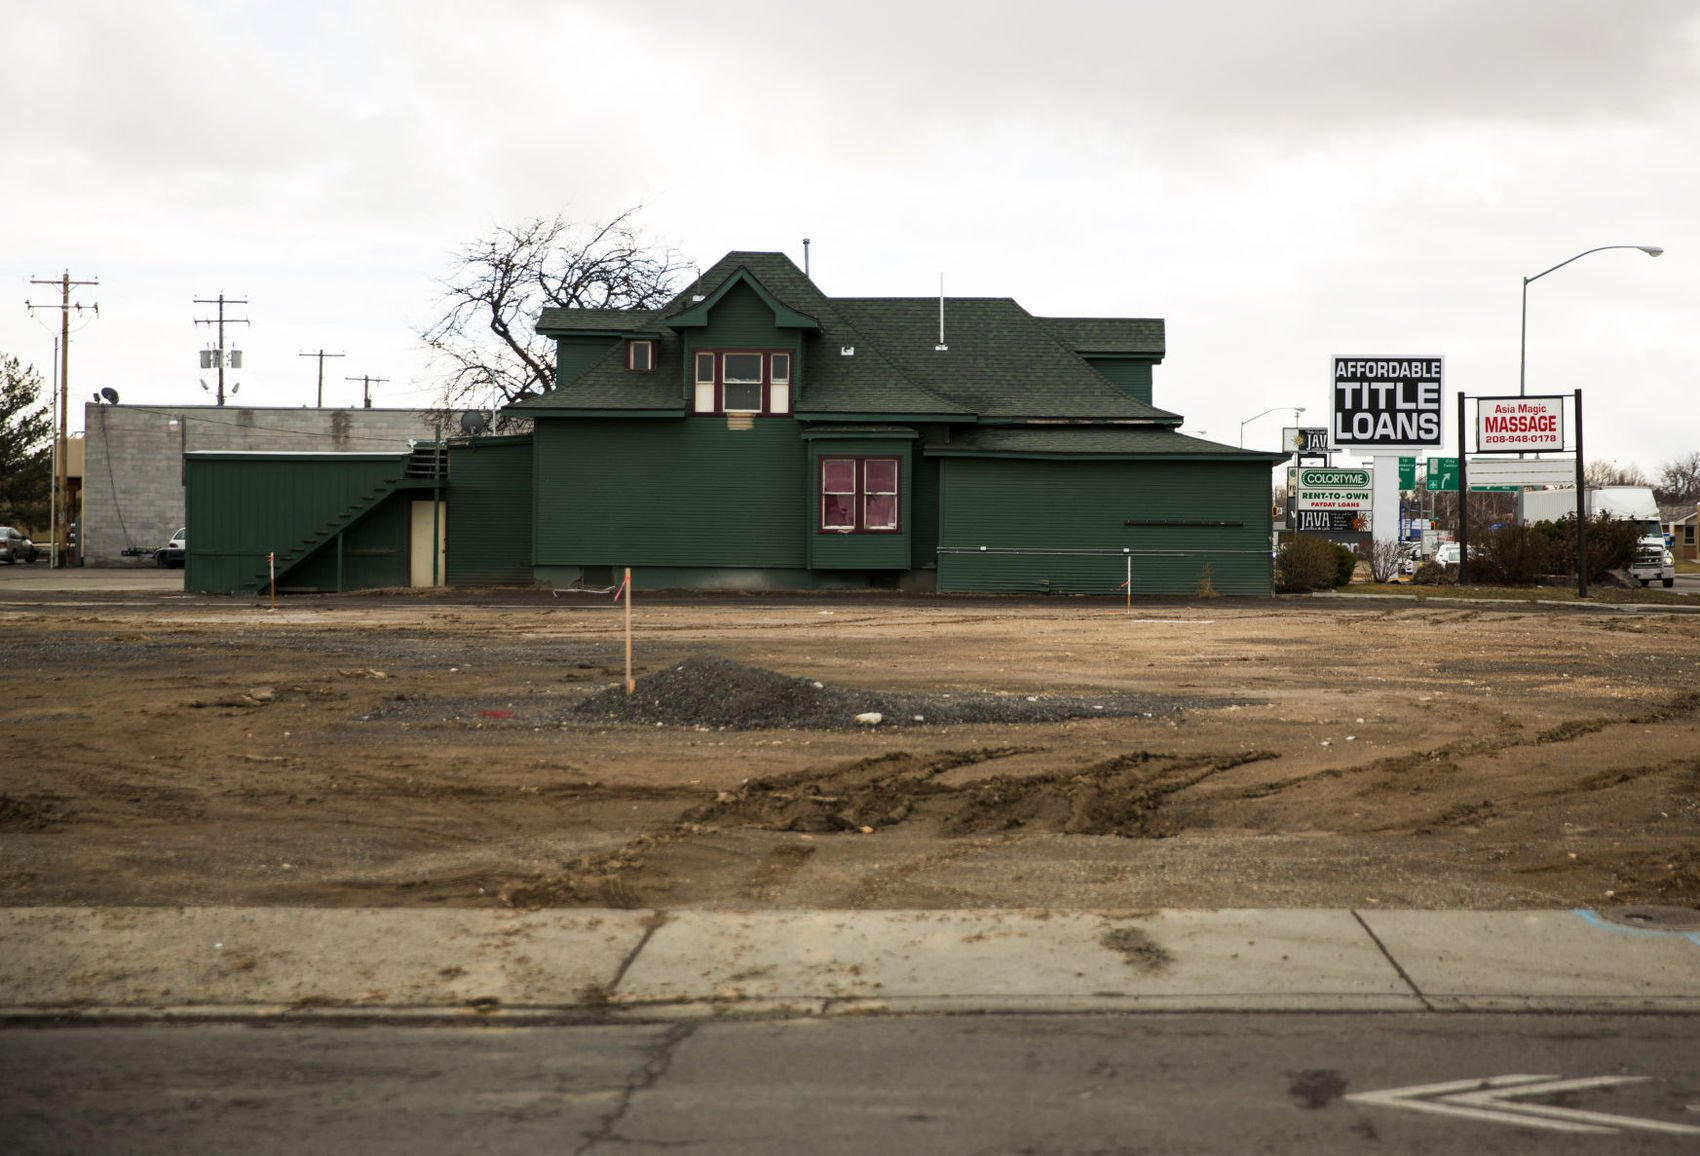 Walmart, Carlu0027s Jr. And Olive Garden Have Building Permits In Twin Falls